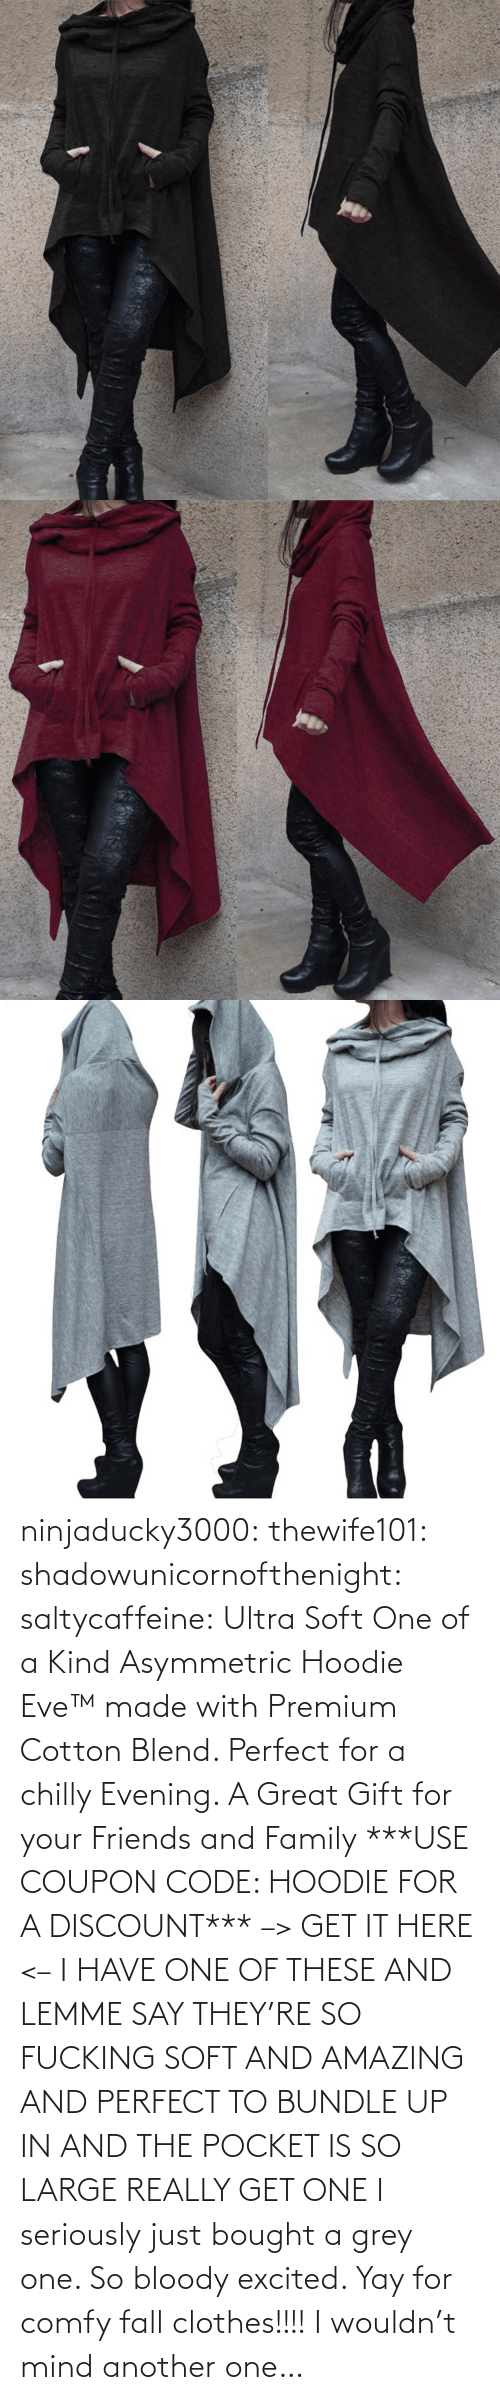 Another One, Clothes, and Fall: ninjaducky3000:  thewife101: shadowunicornofthenight:  saltycaffeine:  Ultra Soft One of a Kind Asymmetric Hoodie Eve™made with Premium Cotton Blend. Perfect for a chilly Evening. A Great Gift for your Friends and Family ***USE COUPON CODE: HOODIE FOR A DISCOUNT*** –> GET IT HERE <–   I HAVE ONE OF THESE AND LEMME SAY THEY'RE SO FUCKING SOFT AND AMAZING AND PERFECT TO BUNDLE UP IN AND THE POCKET IS SO LARGE REALLY GET ONE   I seriously just bought a grey one. So bloody excited. Yay for comfy fall clothes!!!!     I wouldn't mind another one…